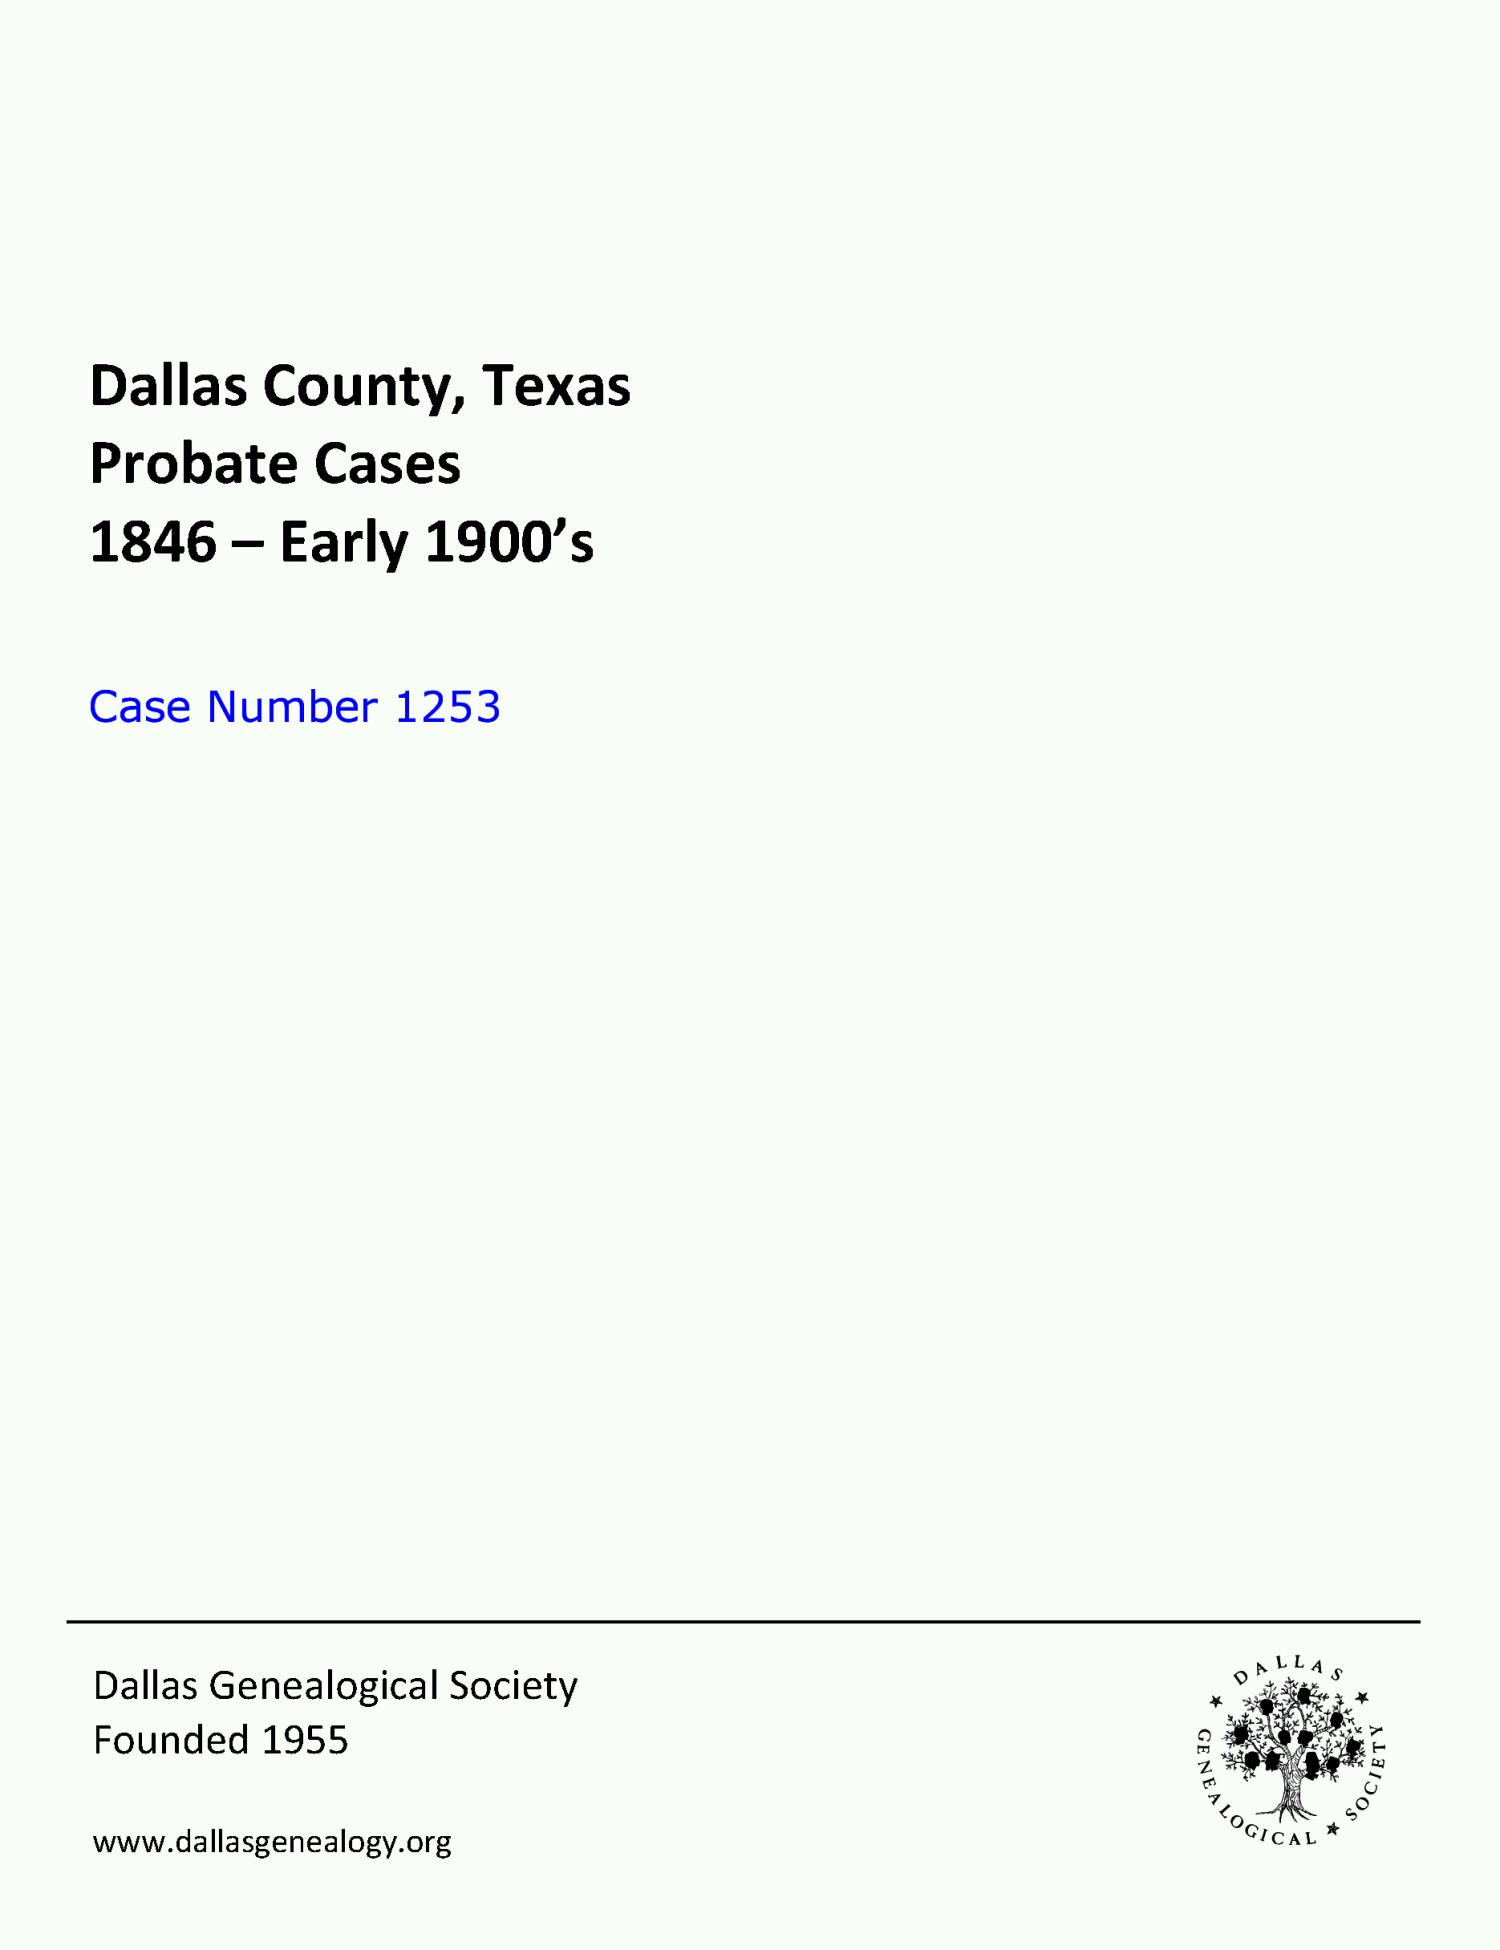 Dallas County Probate Case 1253: Langston, Mary A. (Minor)                                                                                                      [Sequence #]: 1 of 18